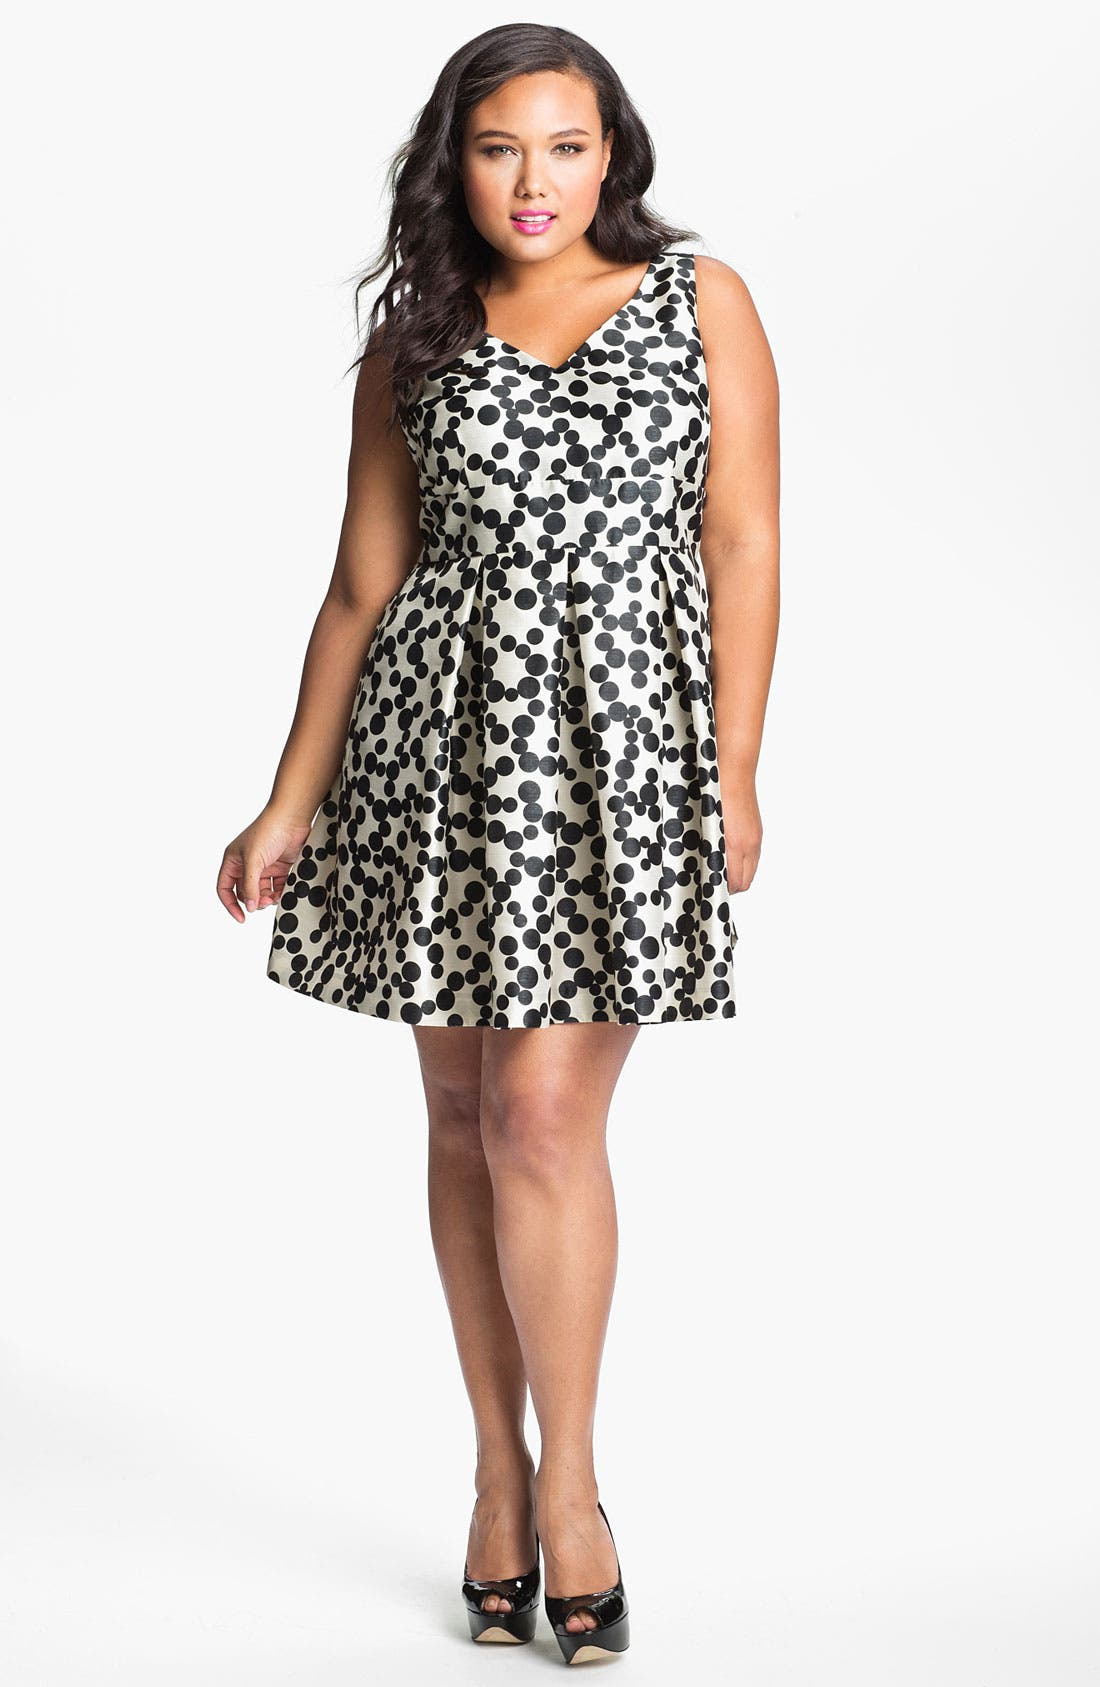 Main Image - Taylor Dresses Polka Dot Fit & Flare Dress (Plus Size)